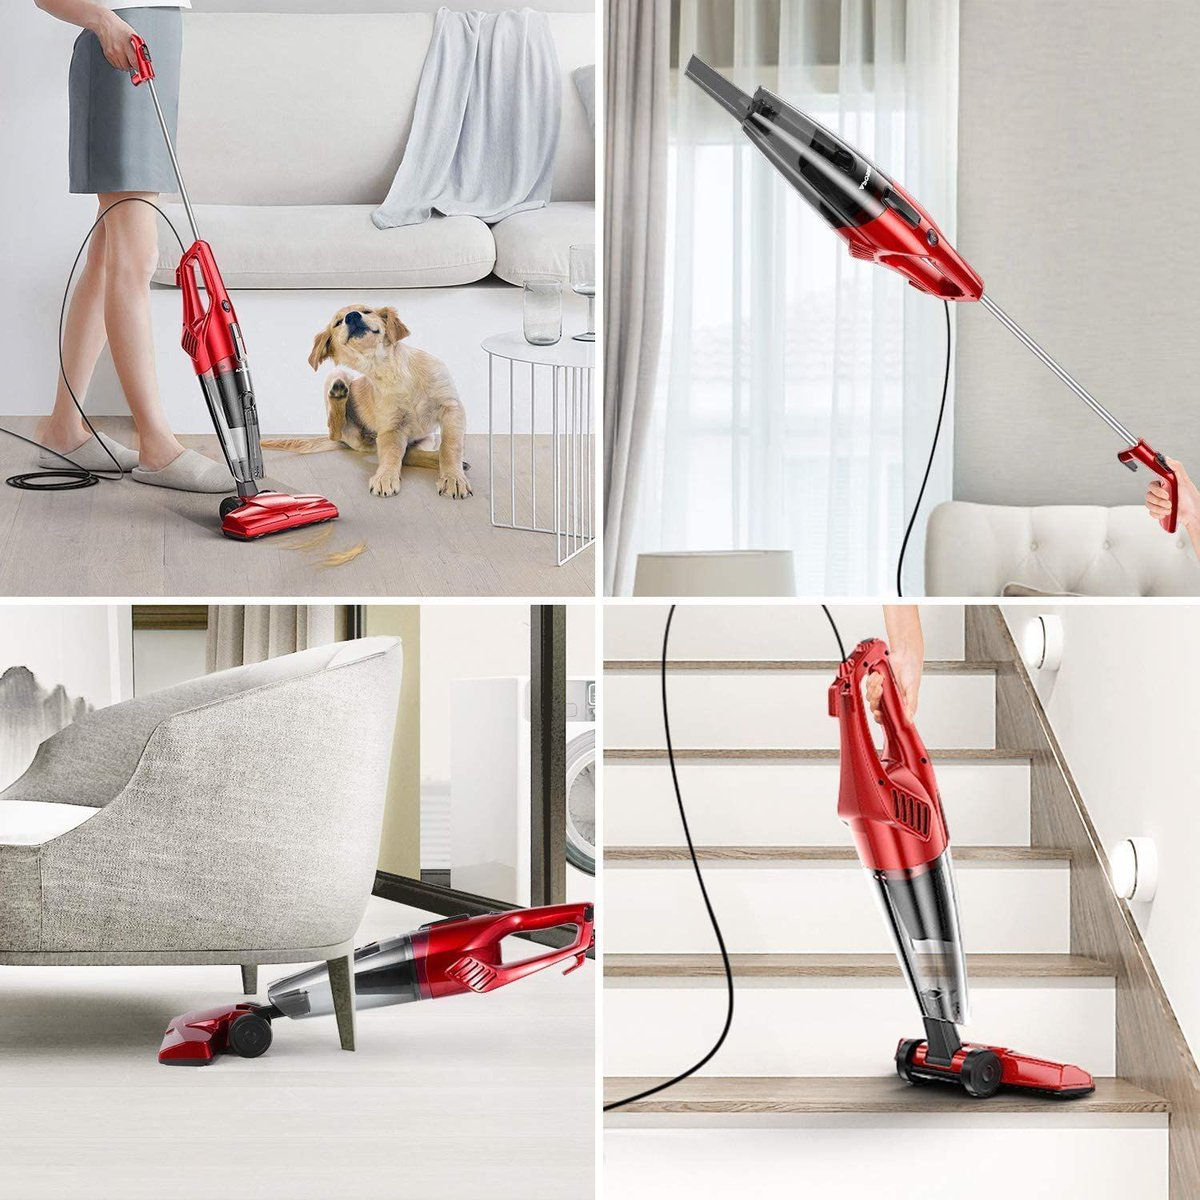 ad: $39.99   2-in-1 600W Corded Stick Vacuum    Link0  Link0